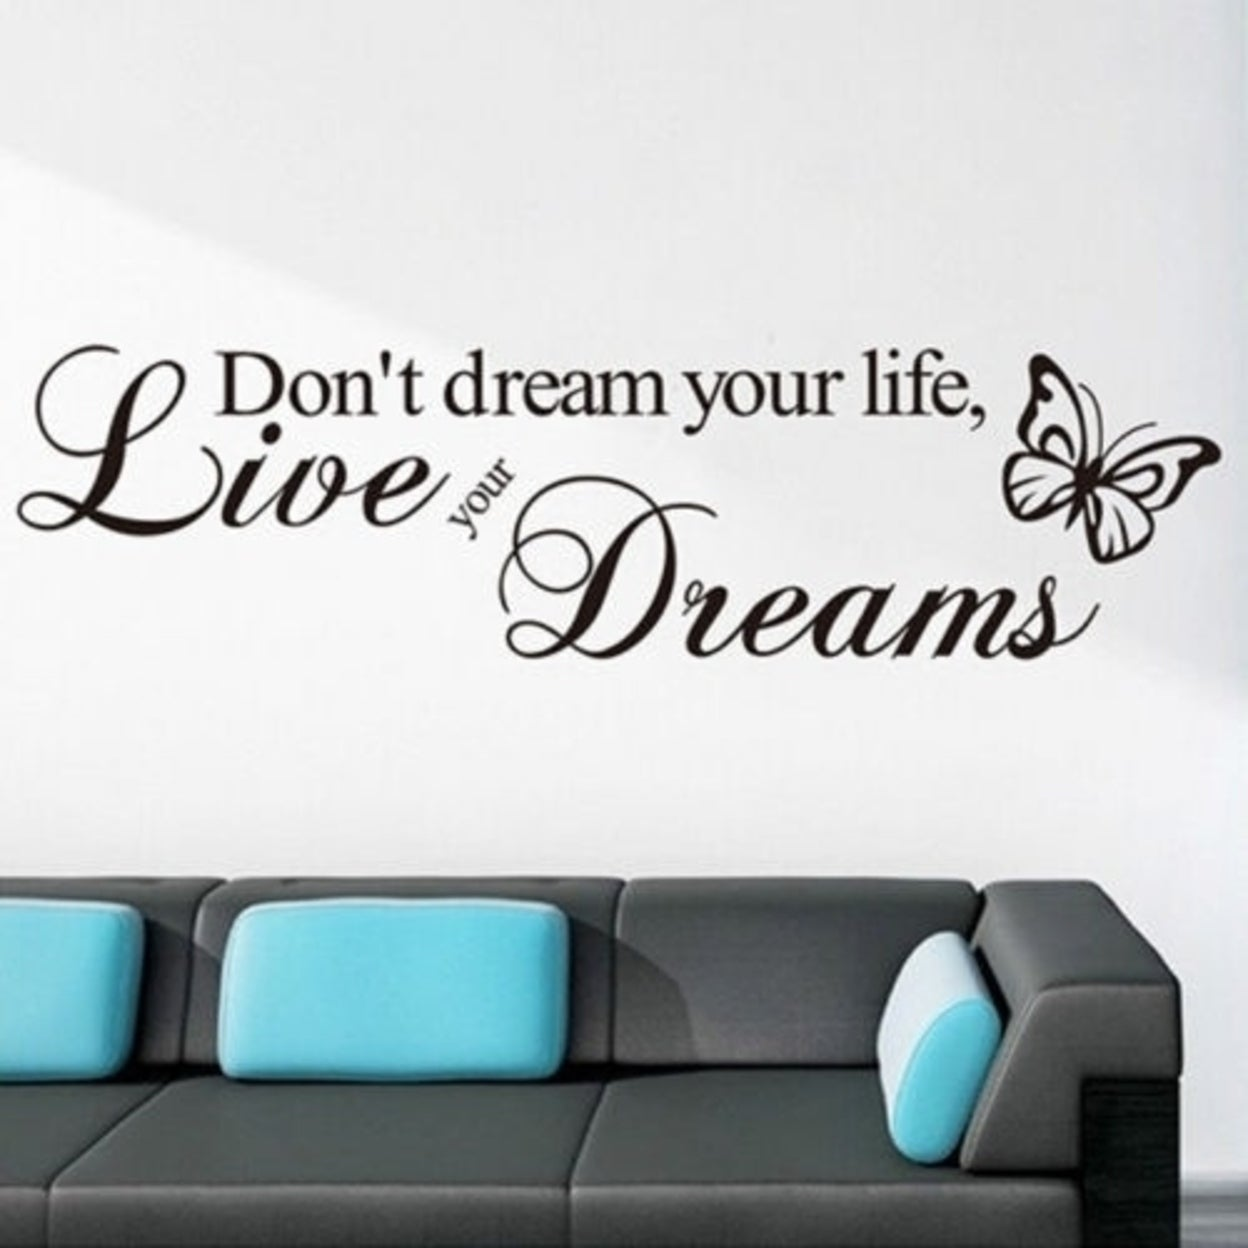 Butterfly vinyl wall decal stickers removable words